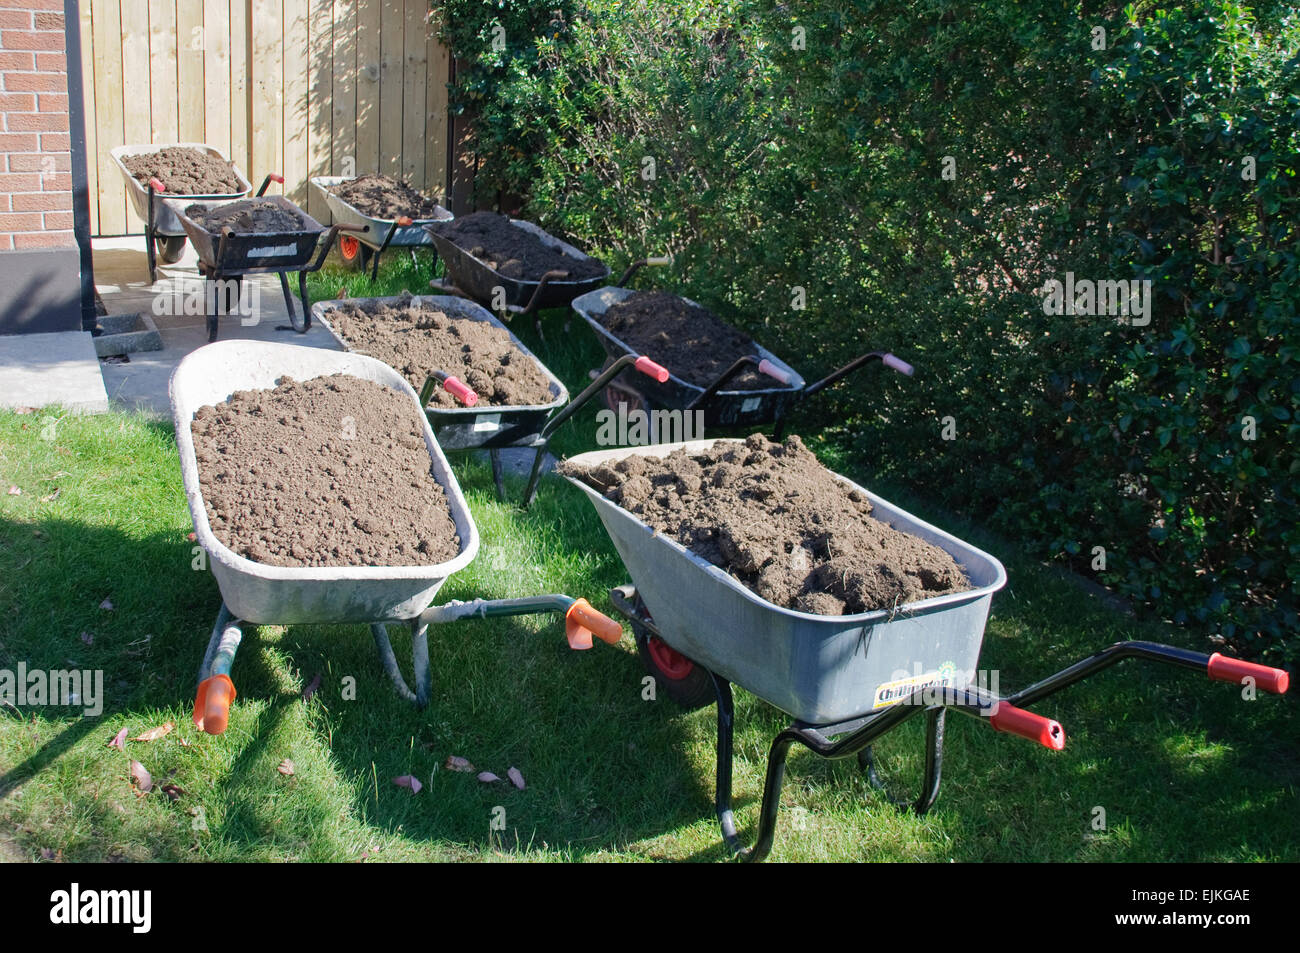 Eight wheelbarrows full of soil at a garden - Stock Image